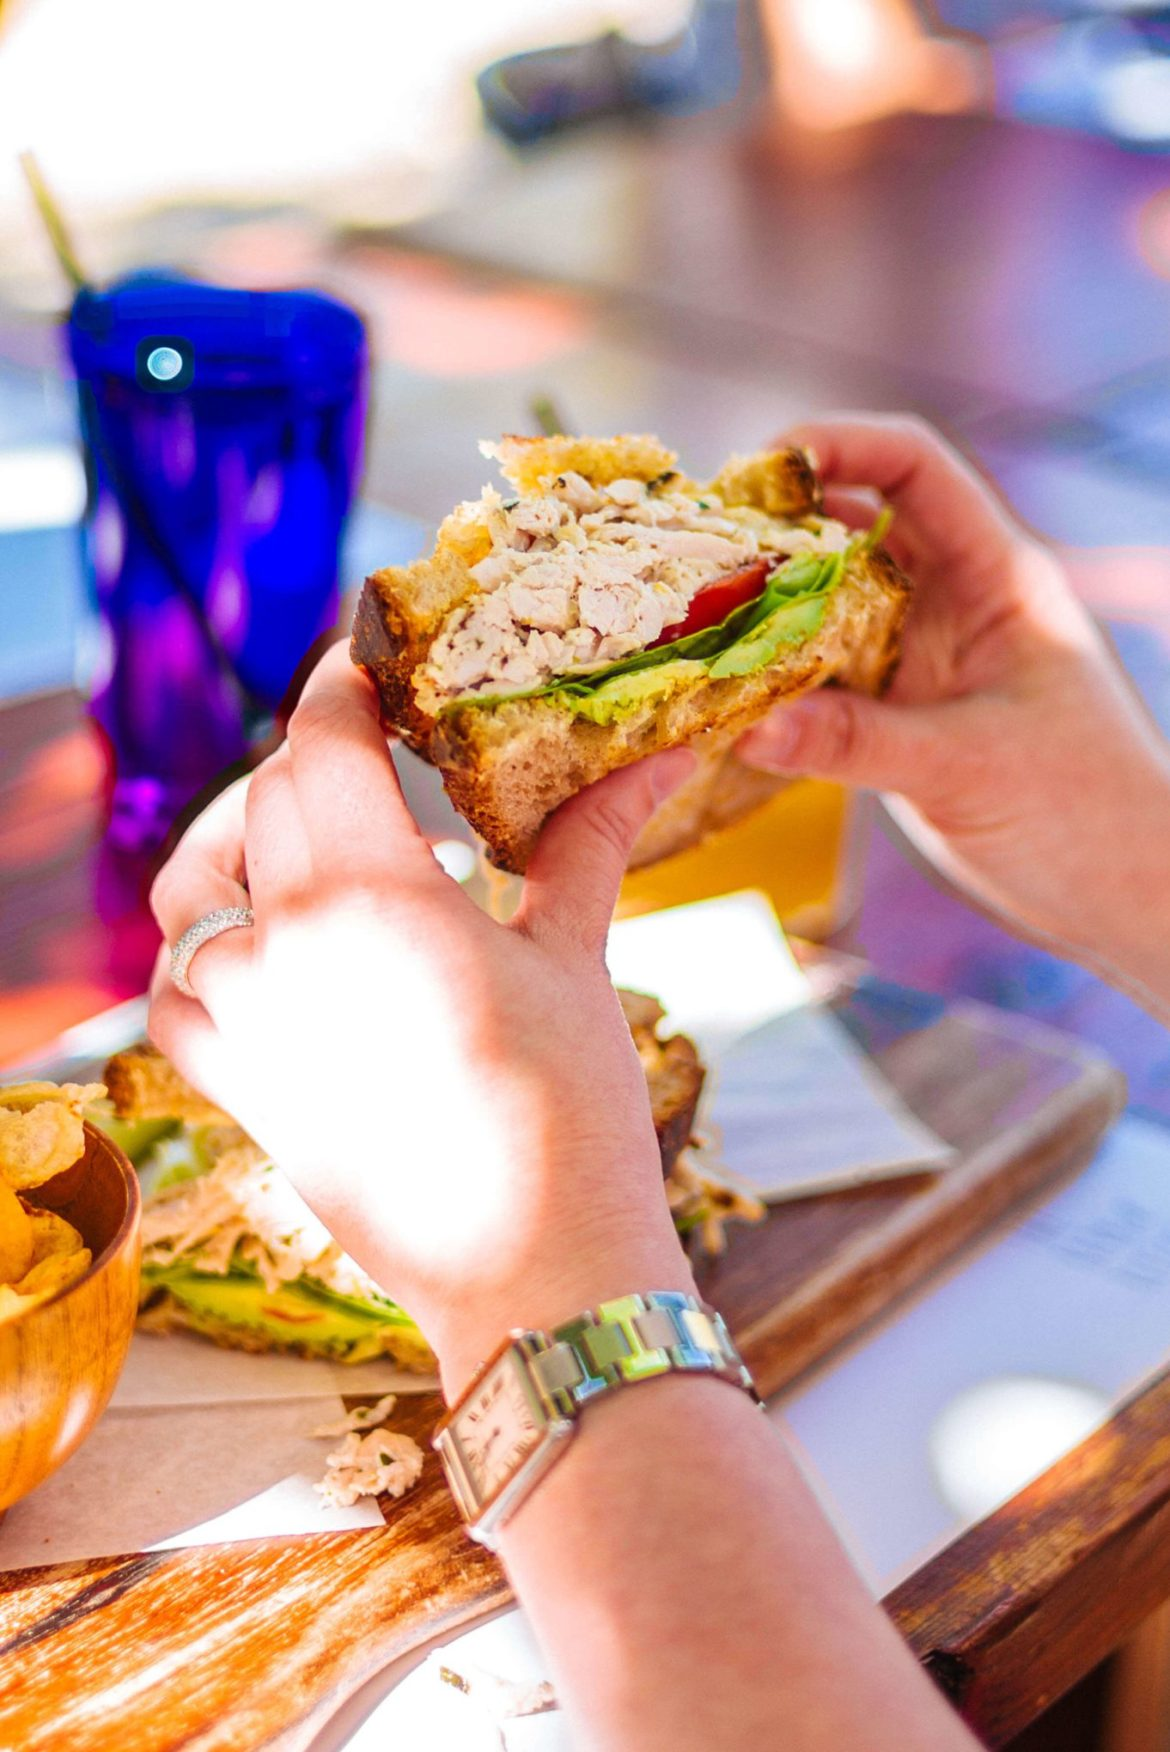 You'll find the best brunch in Palm Springs at this hidden gem the Barn Kitchen at Sparrows Lodge in Palm Springs, thetasteedit recommends the chicken salad!